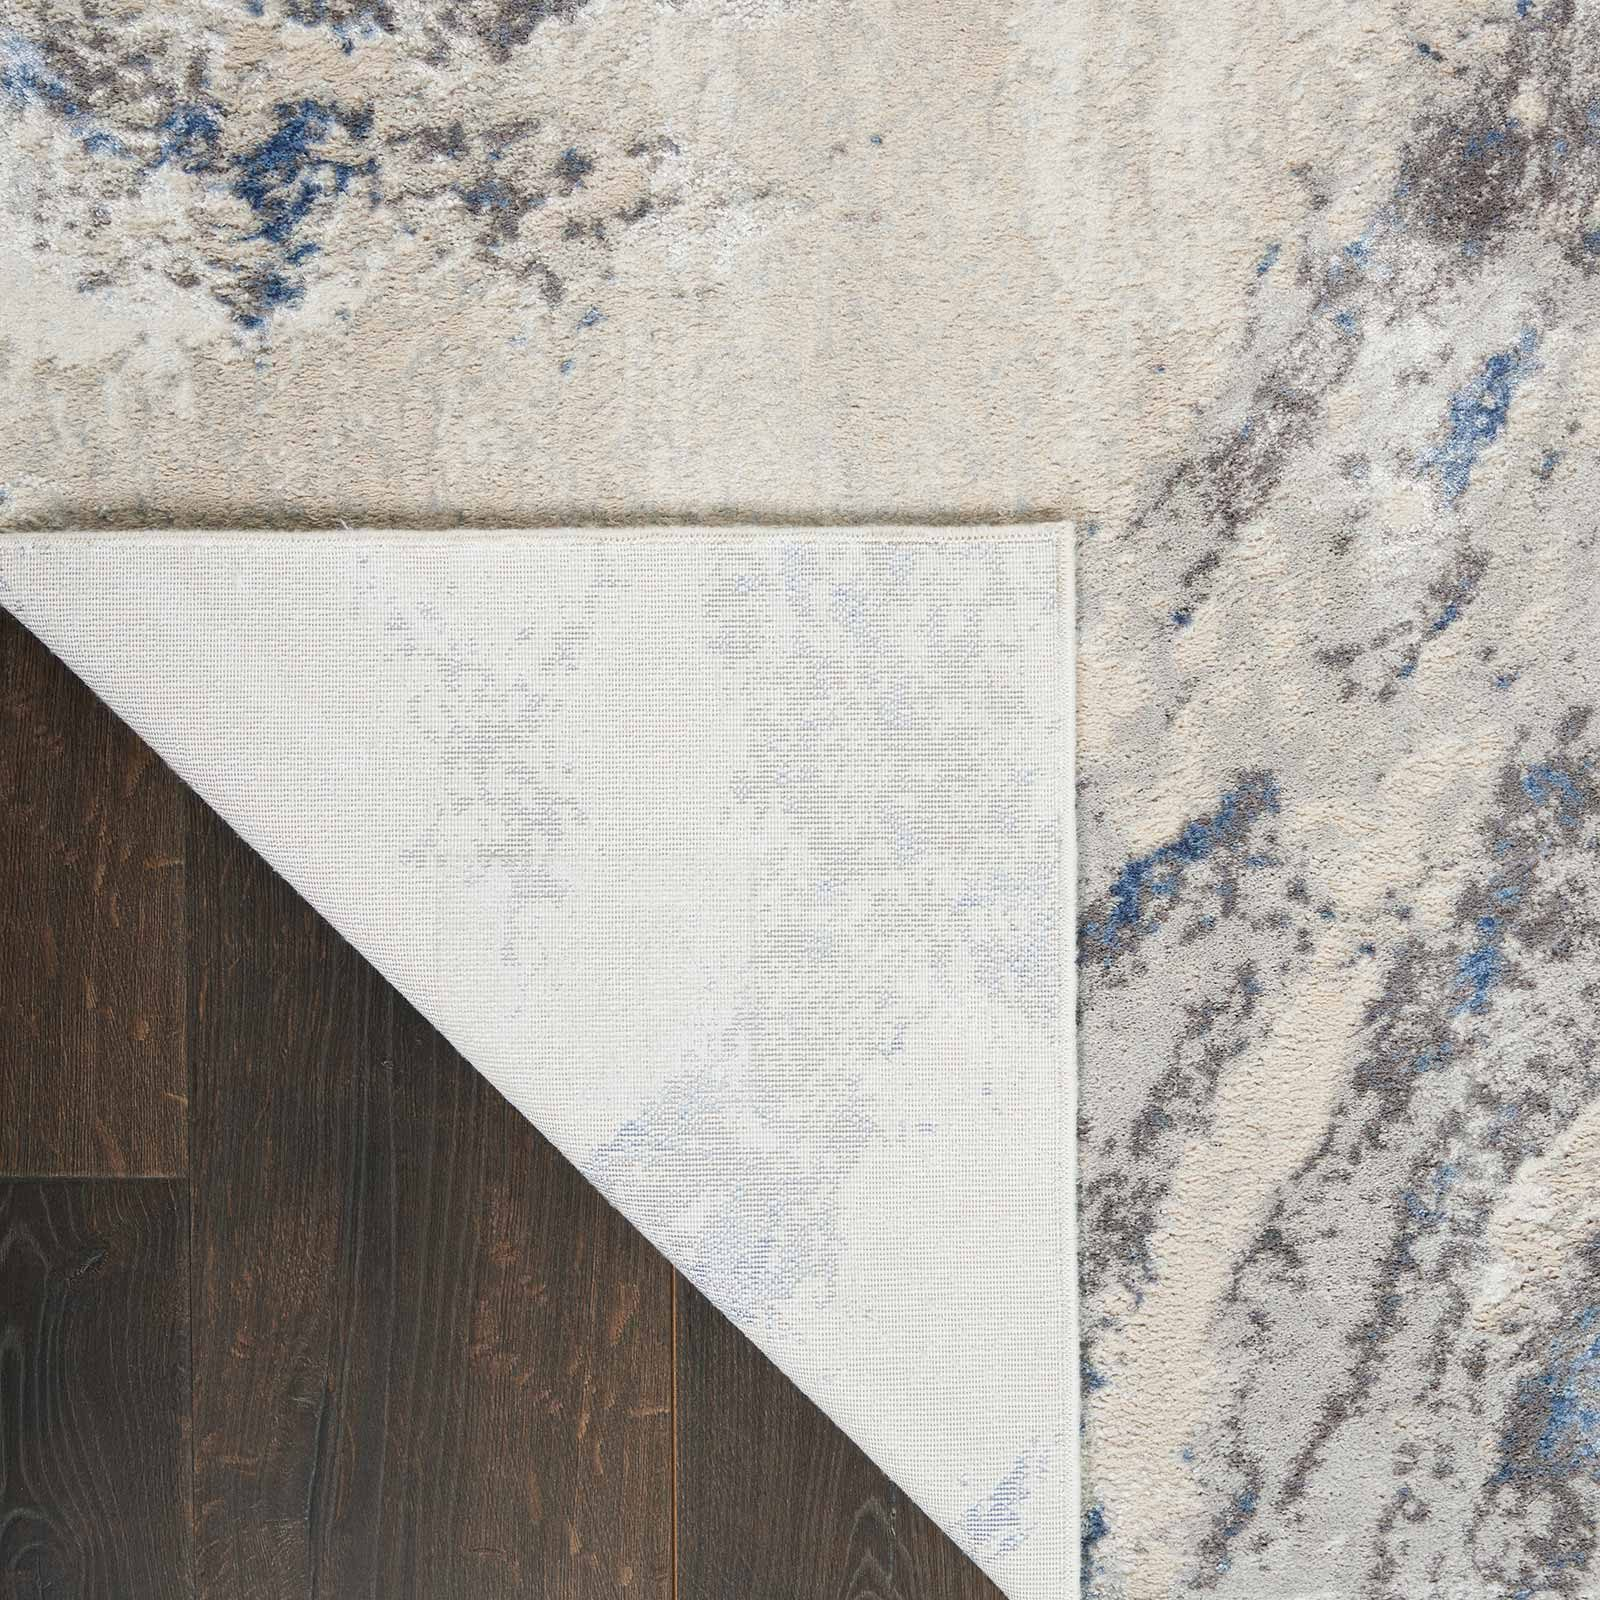 Nourison rug Silky Textures SLY03 BLUE IVORY GREY 5x7 099446710086 CRB C